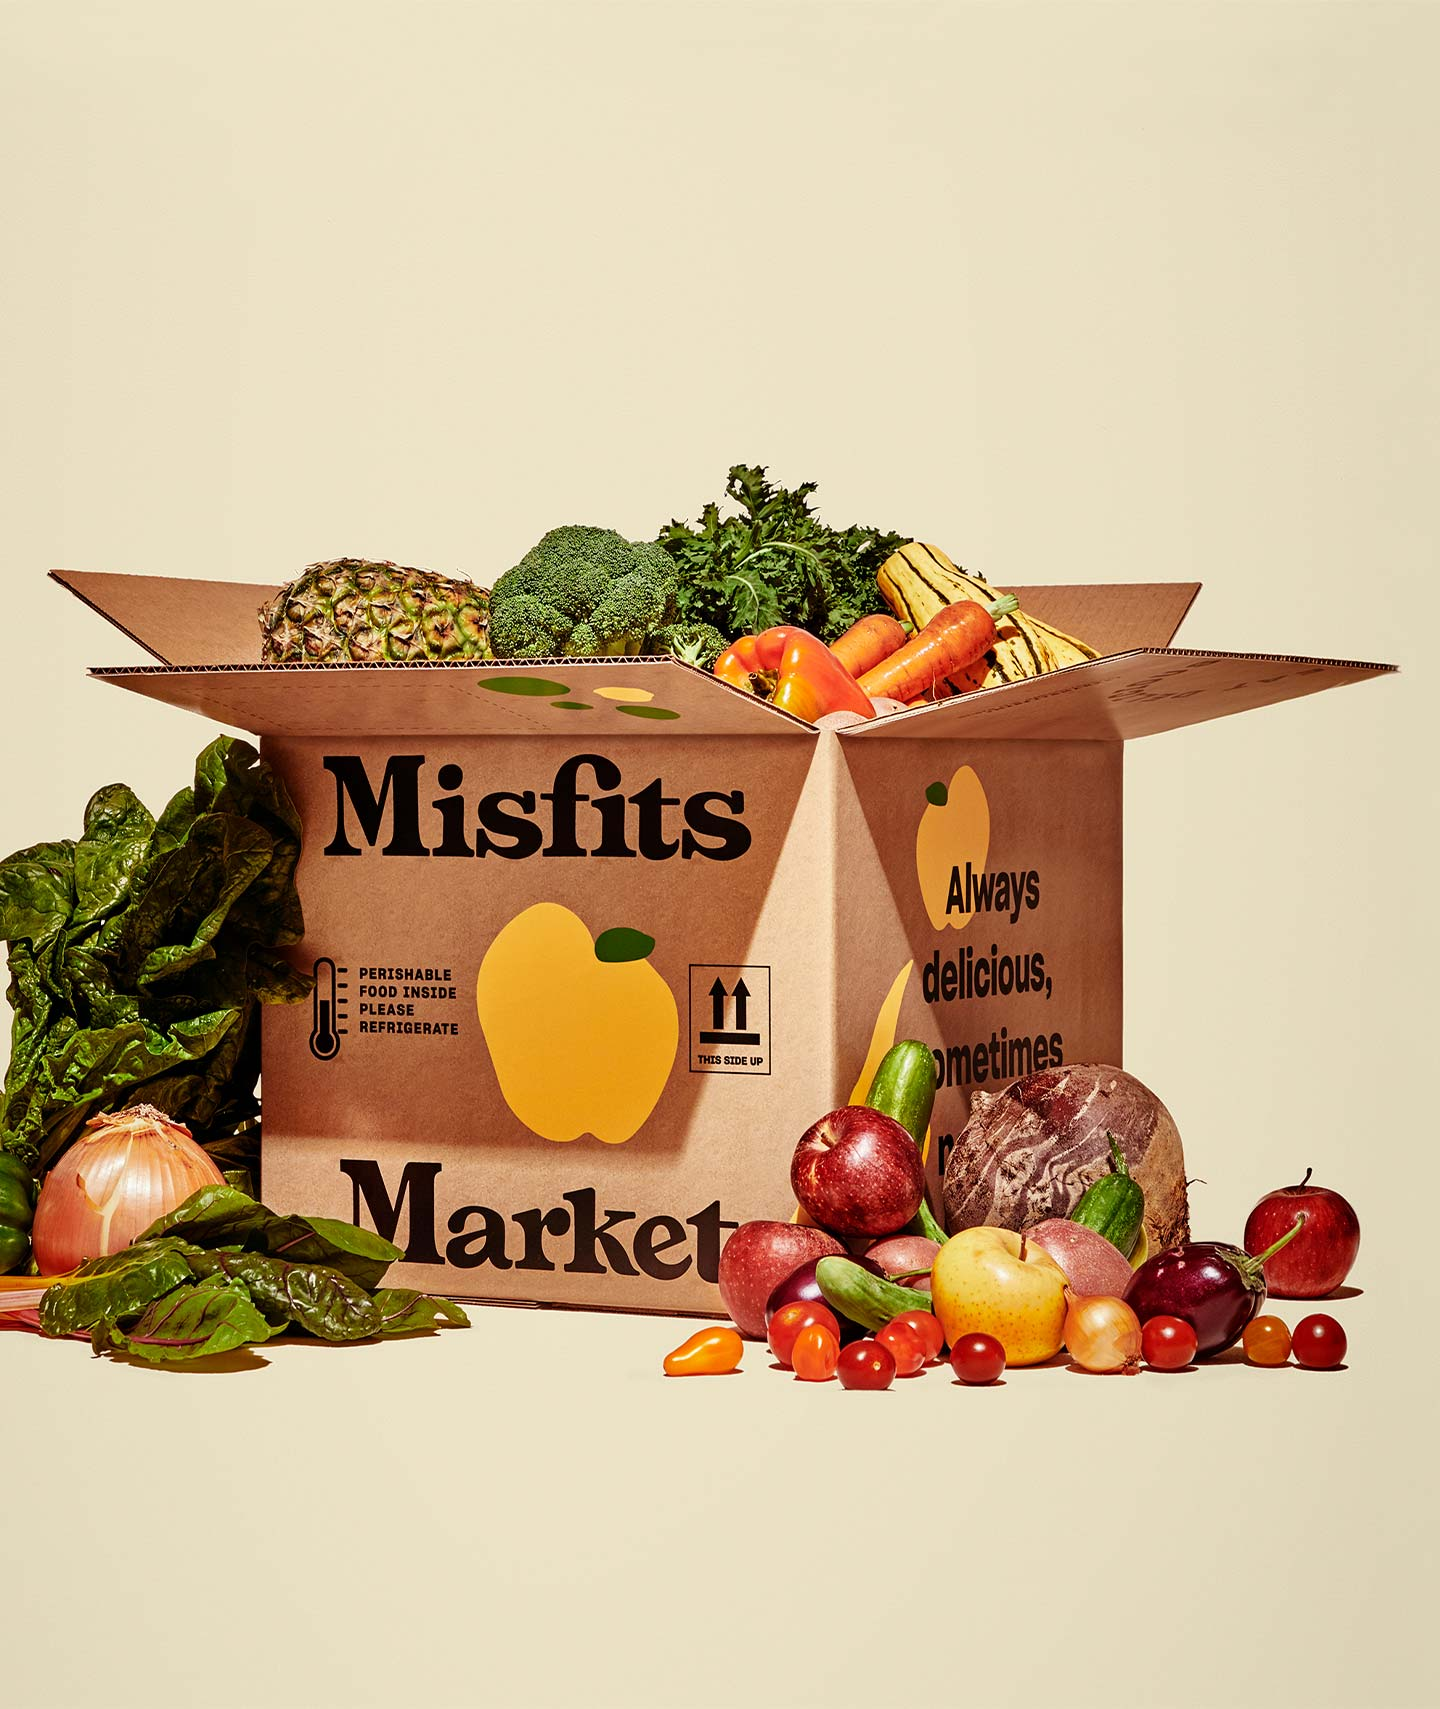 Misfits Market Box Stuffed with Organic Fruit and Veg, $22-35 @misfitsmarket.com - 50% off right now with our code COOKWME-DK8PXH